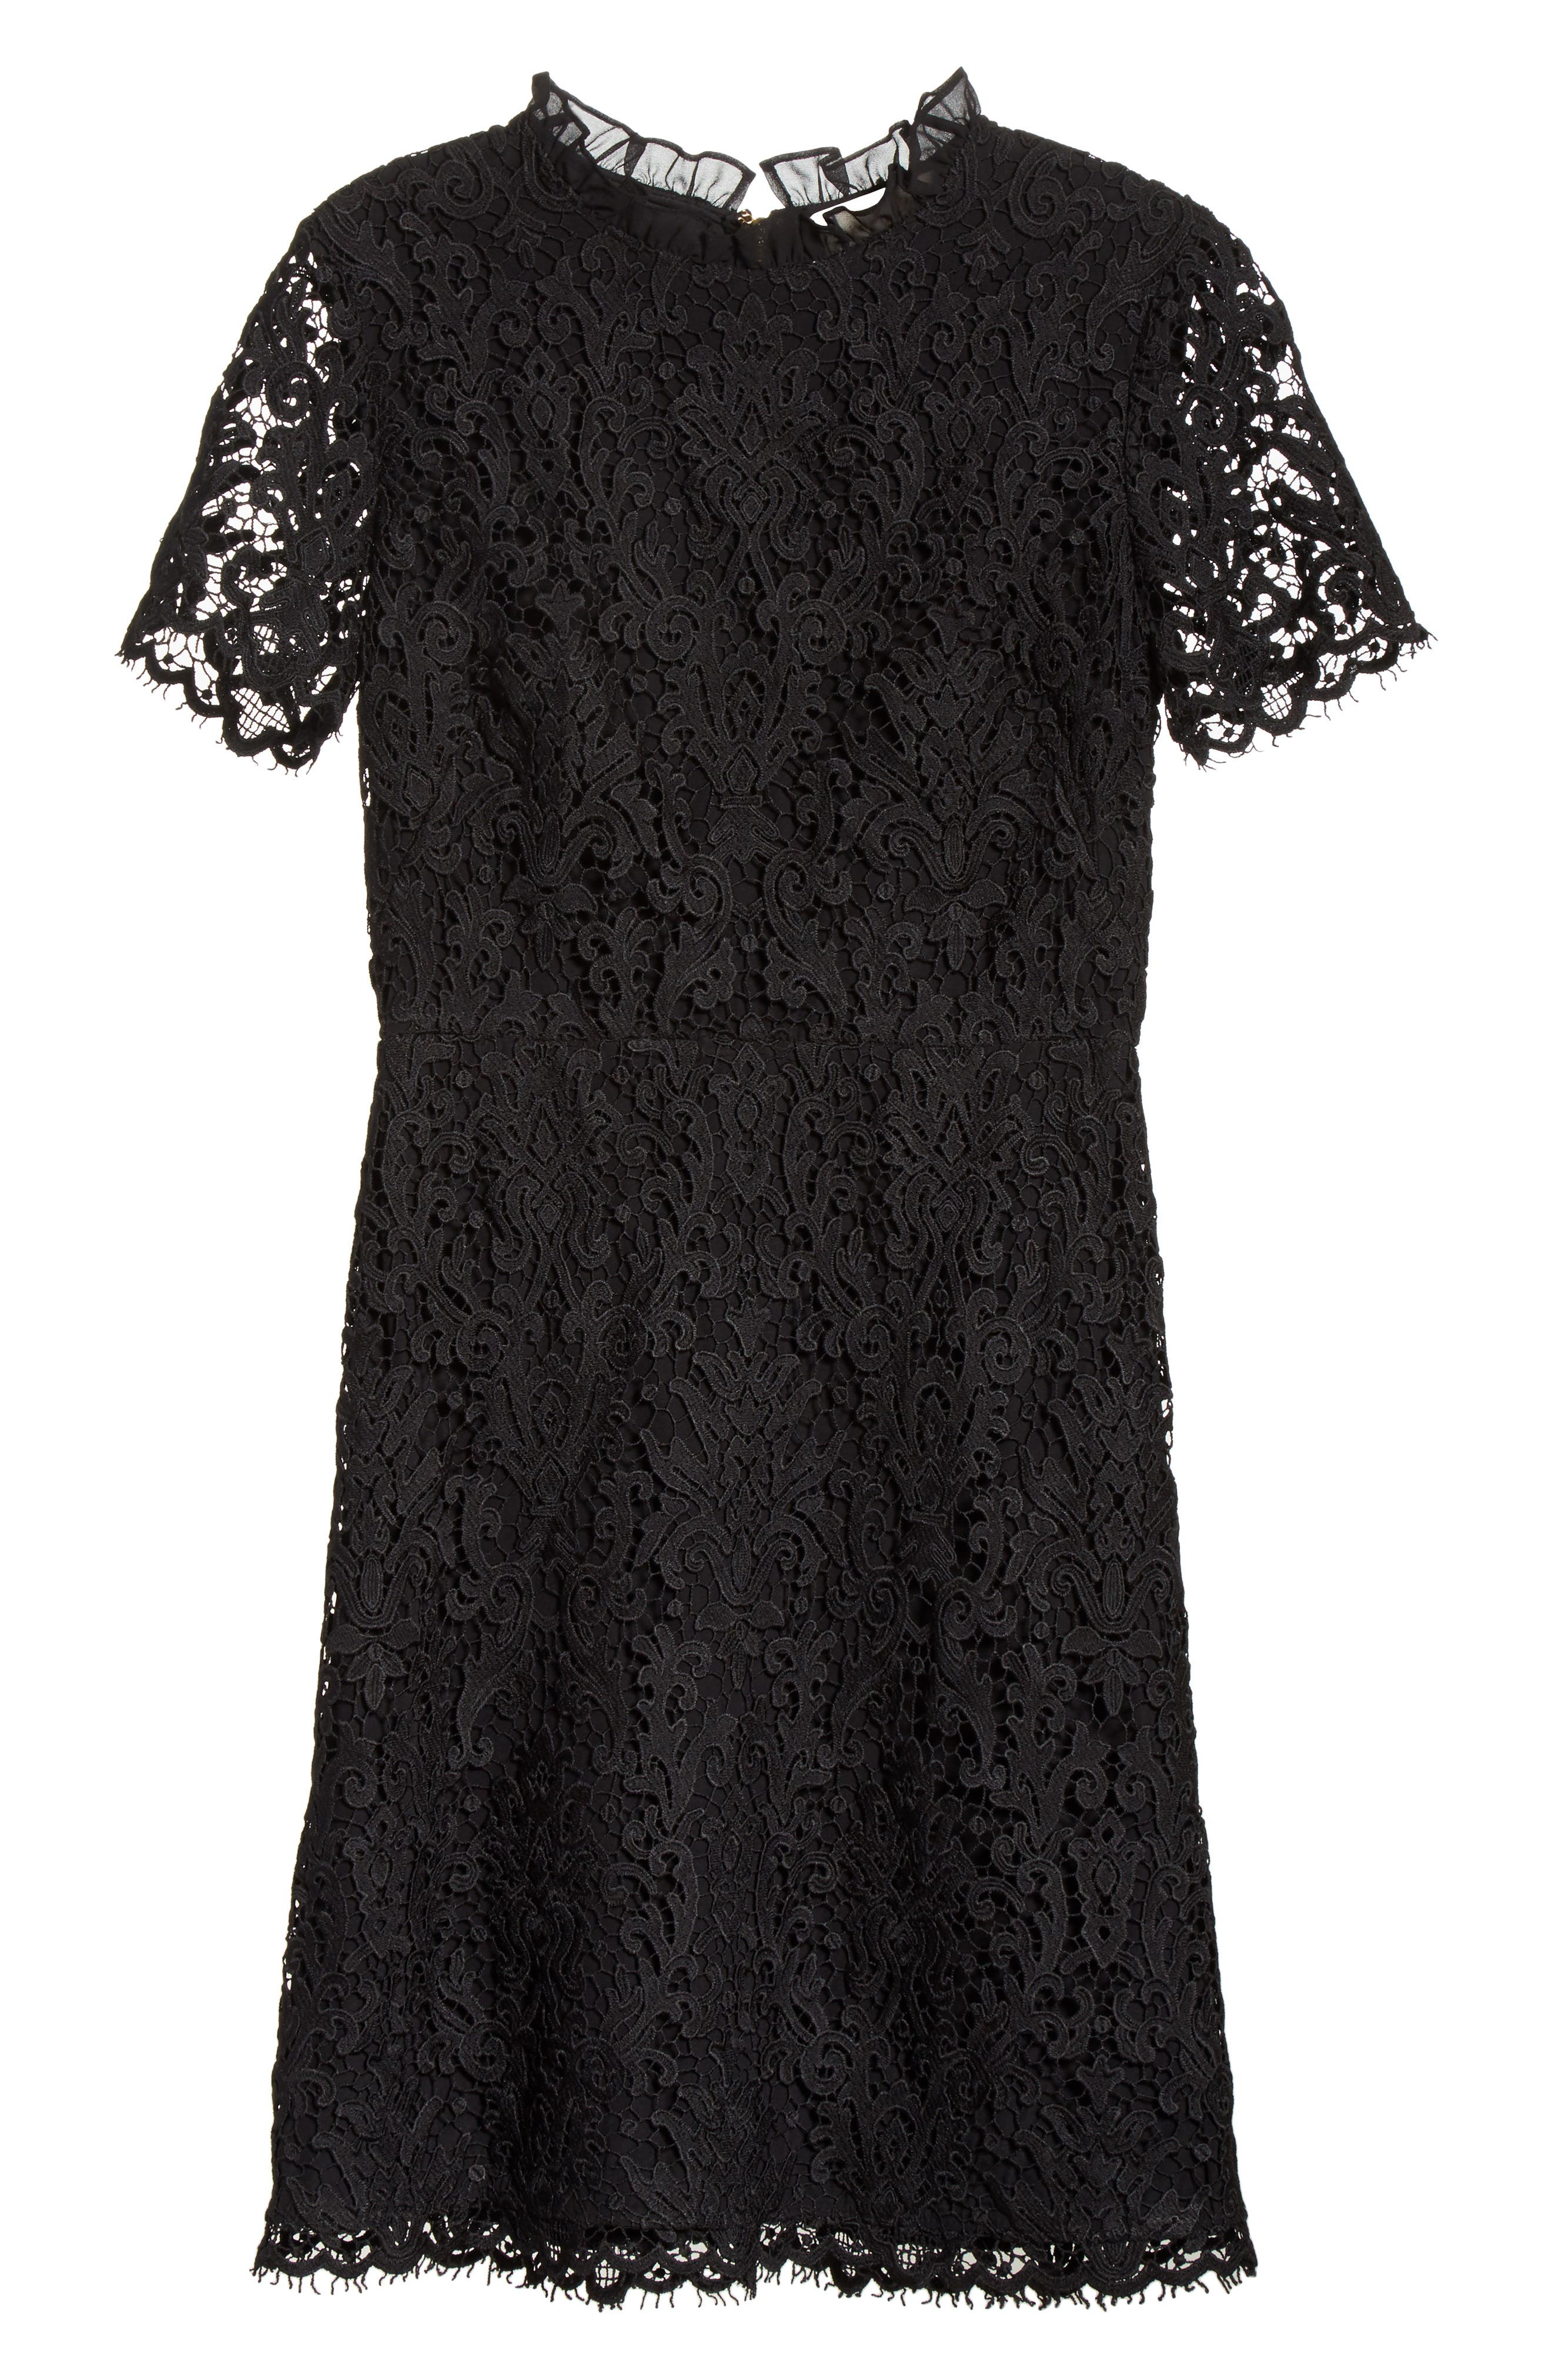 tapestry lace dress,                             Alternate thumbnail 6, color,                             001